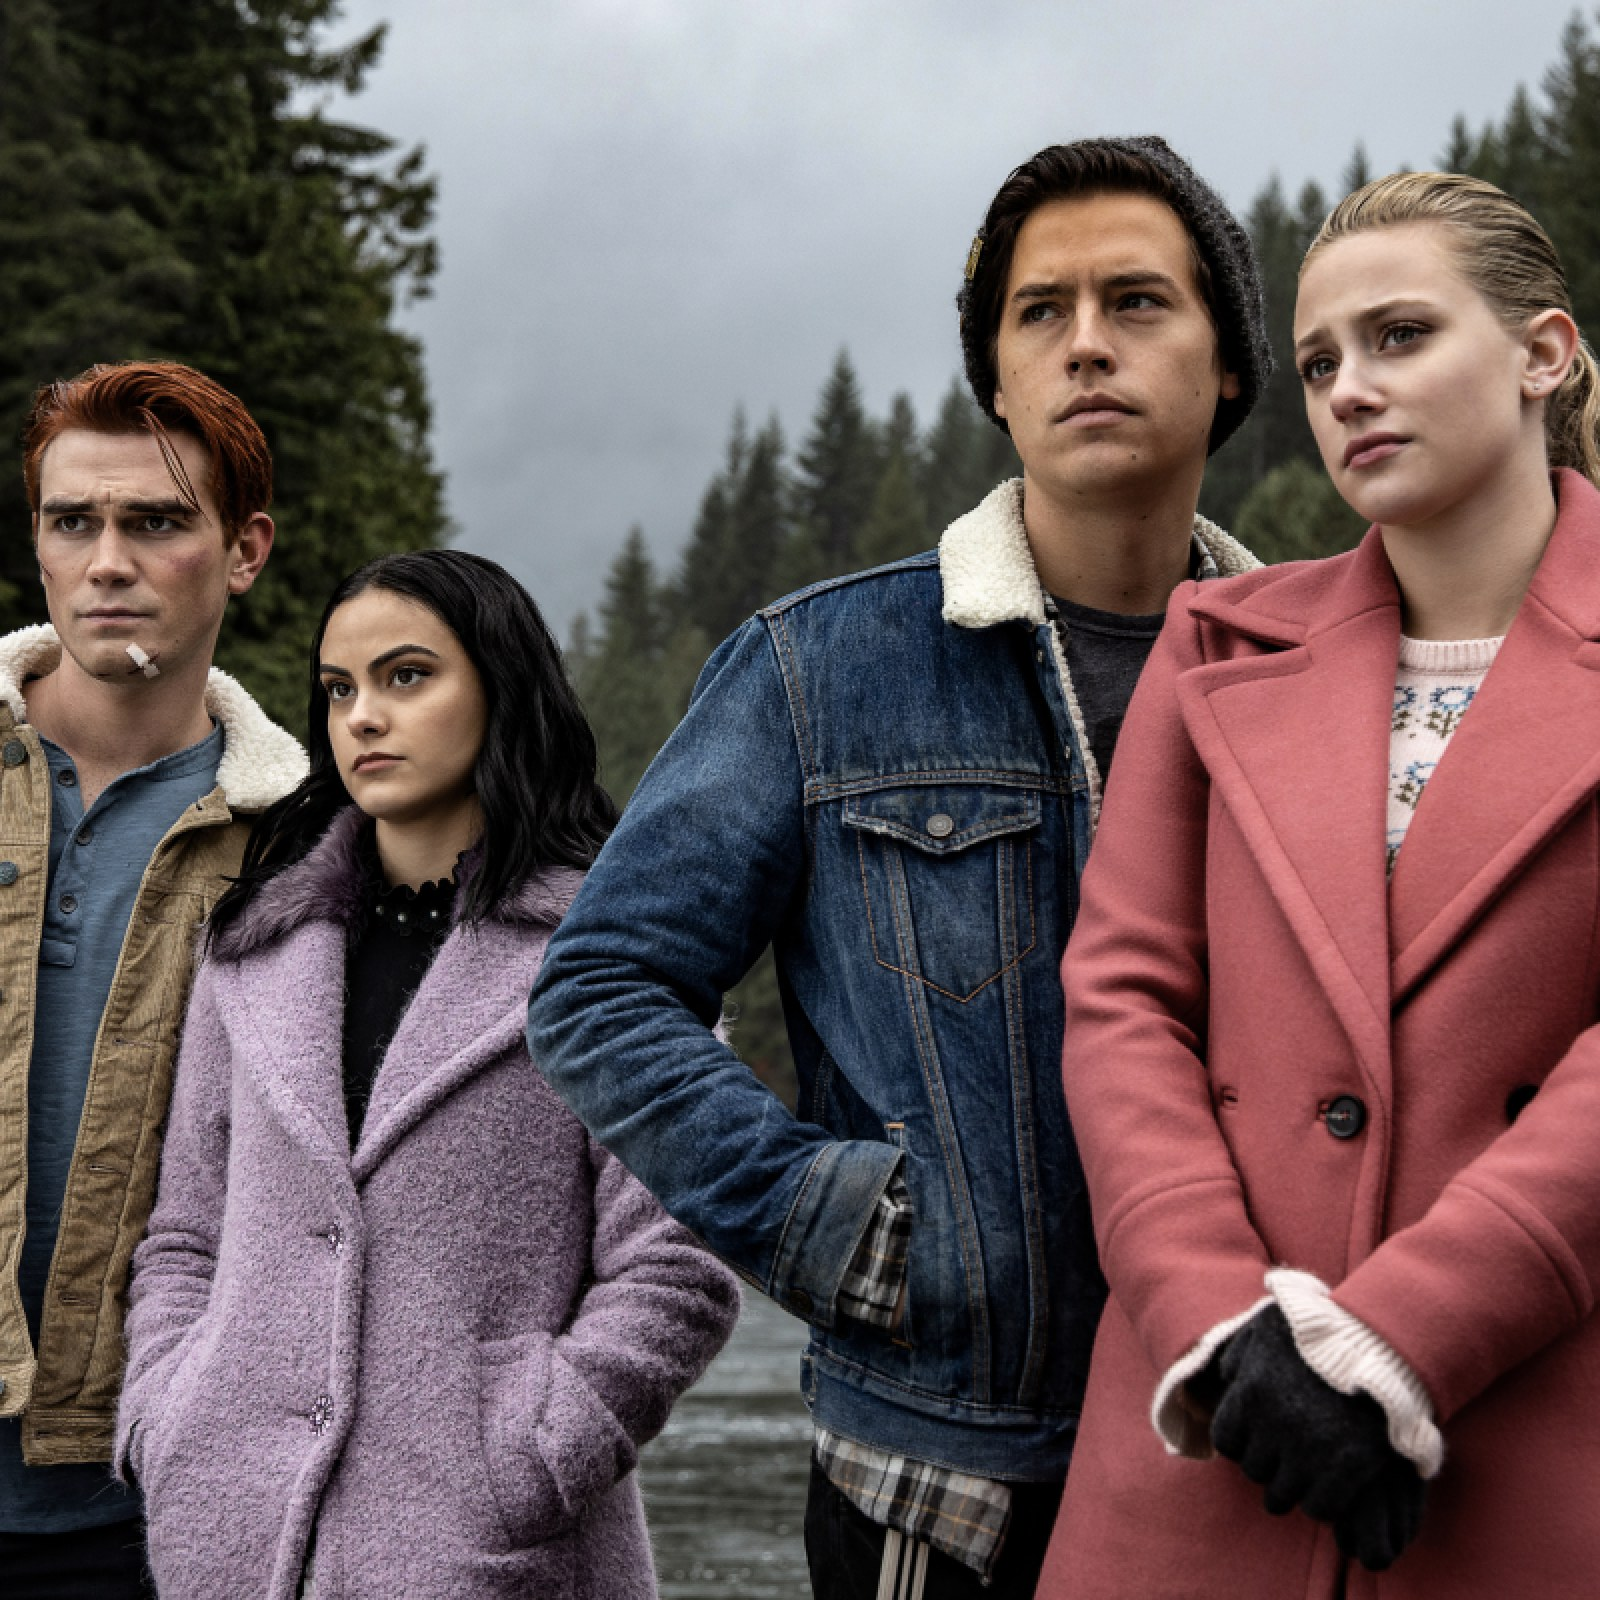 Riverdale Season 4 Episode 17 Release Date When Will The Next Episode Air